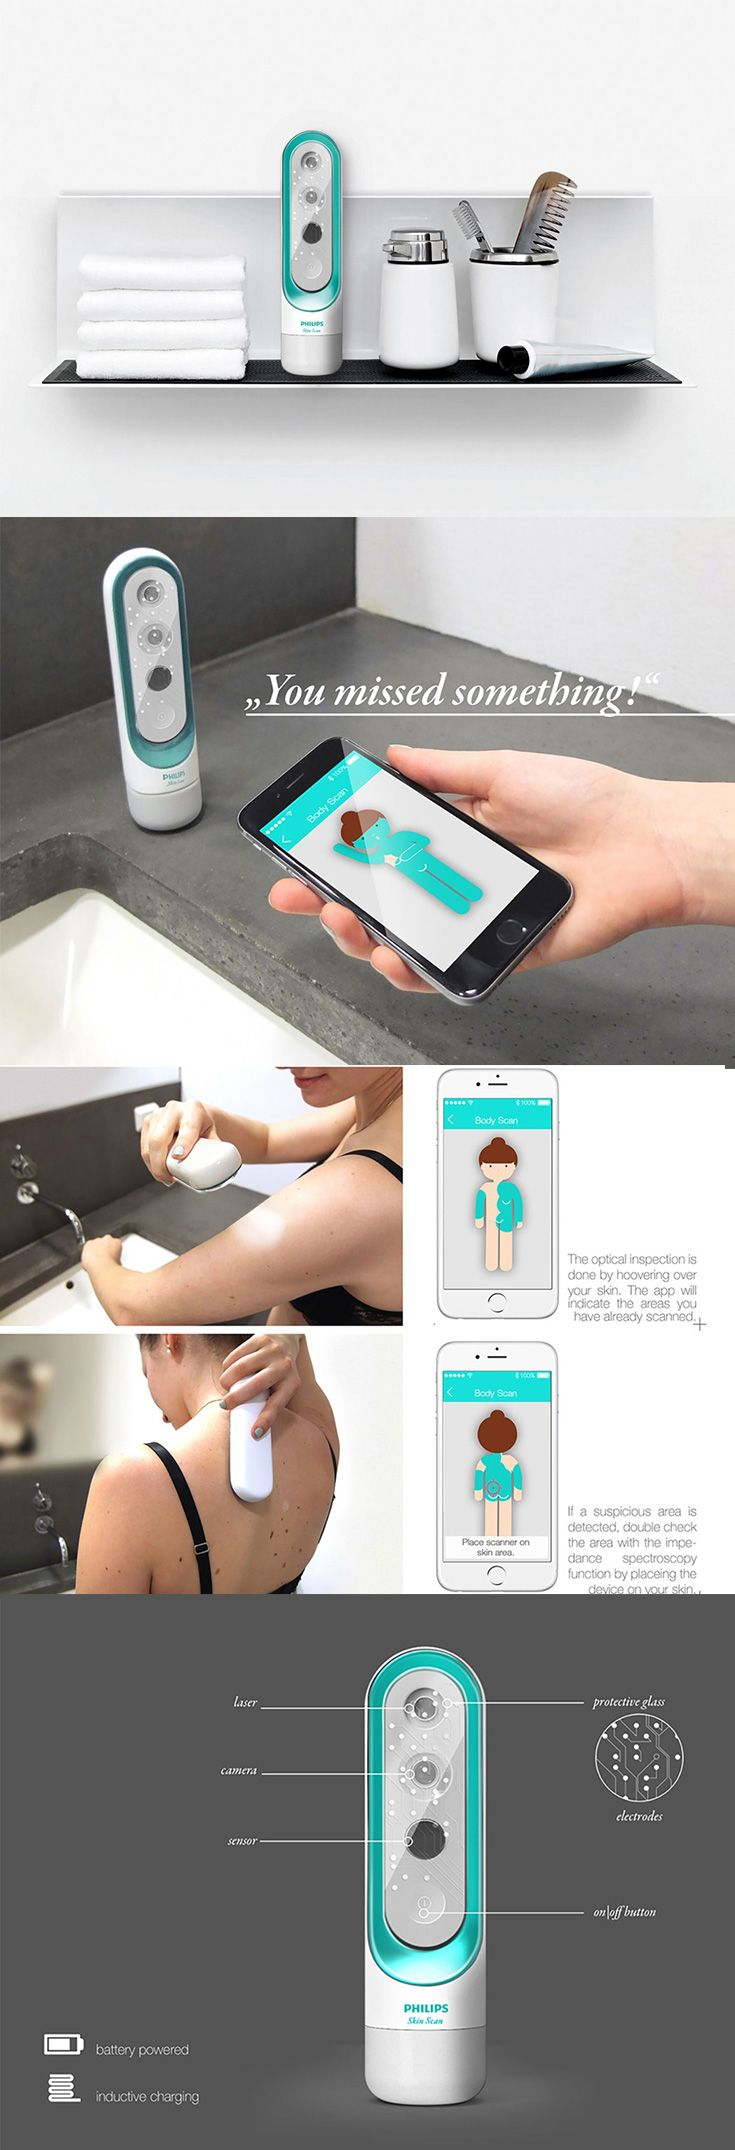 'The Philips Skinscan' is a domestic device that targets the world's most common type of cancer, Melanoma, it is a simple hand-held device that is capable of detecting and diagnosing skin anomalies to look for cancer. Read More: http://www.yankodesign.com/2016/11/16/cancer-awareness-starts-at-home/